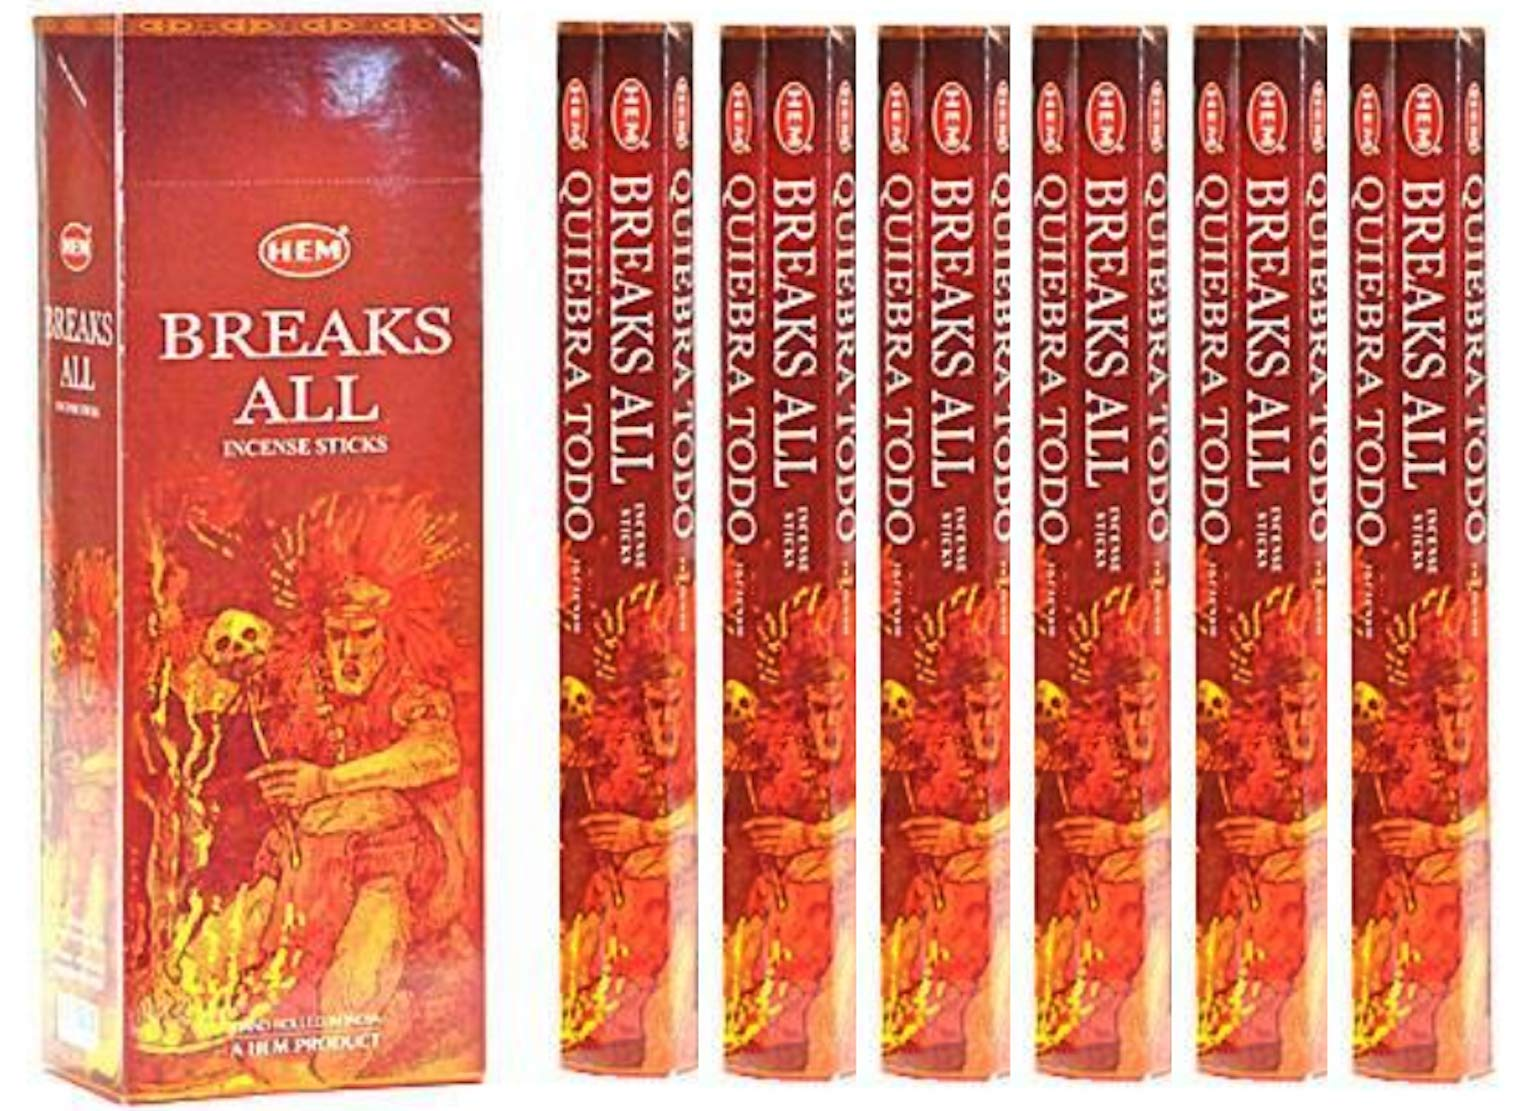 Breaks All - Box of Six 20 Stick Hex Tubes - HEM Incense Hand Rolled In India